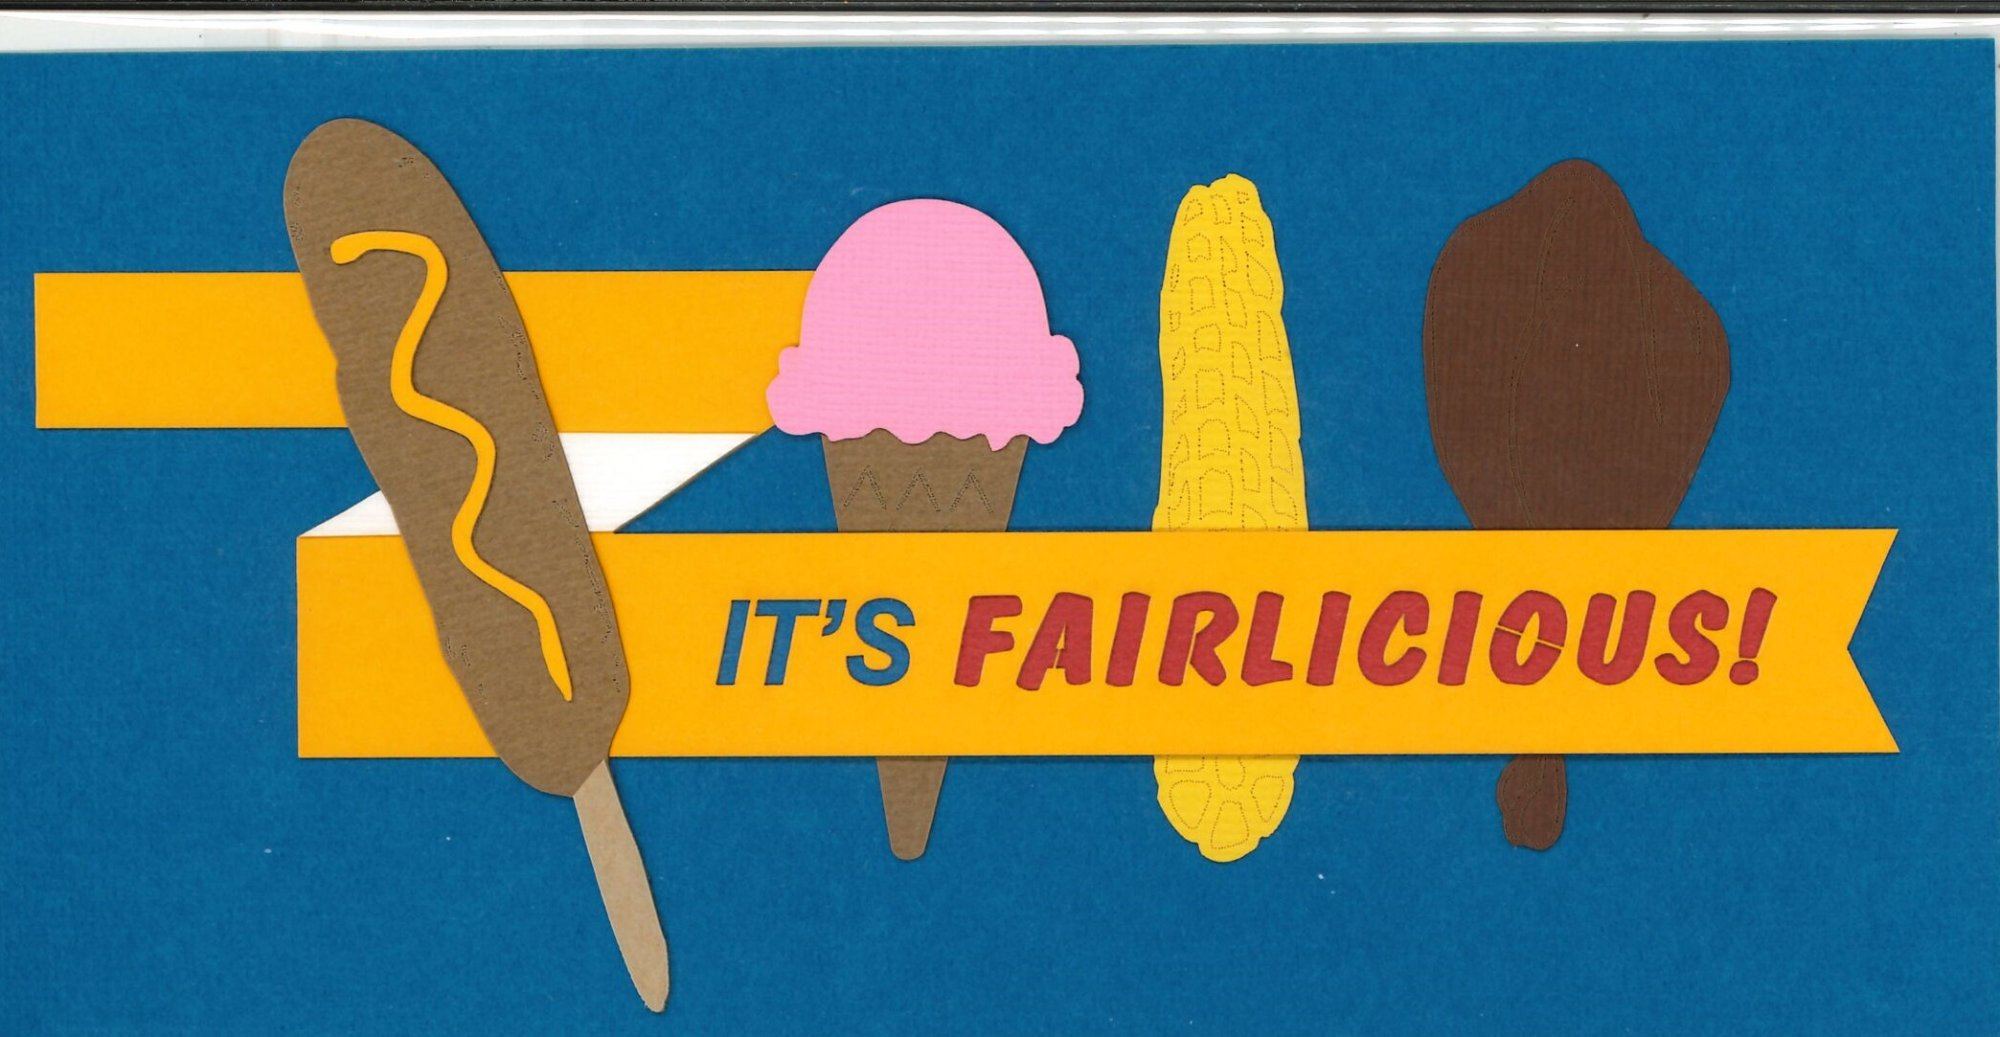 DIECUT - IT'S A FAIRLICIOUS